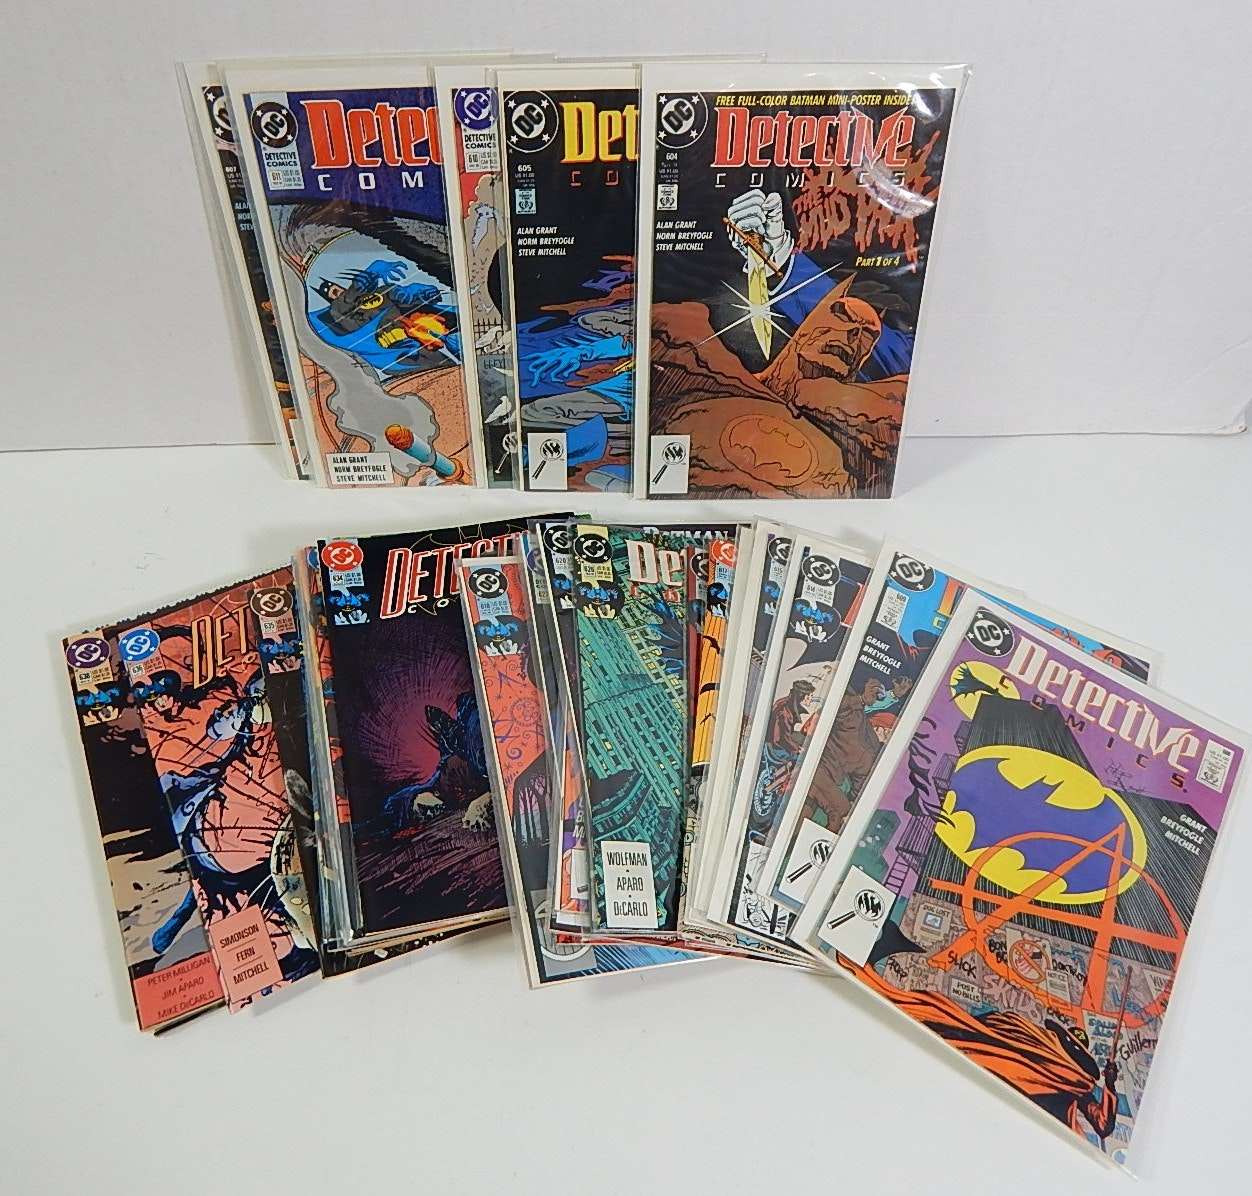 DC Comics with Detective Comics, Batman, Cat Woman - 42 Lot Count